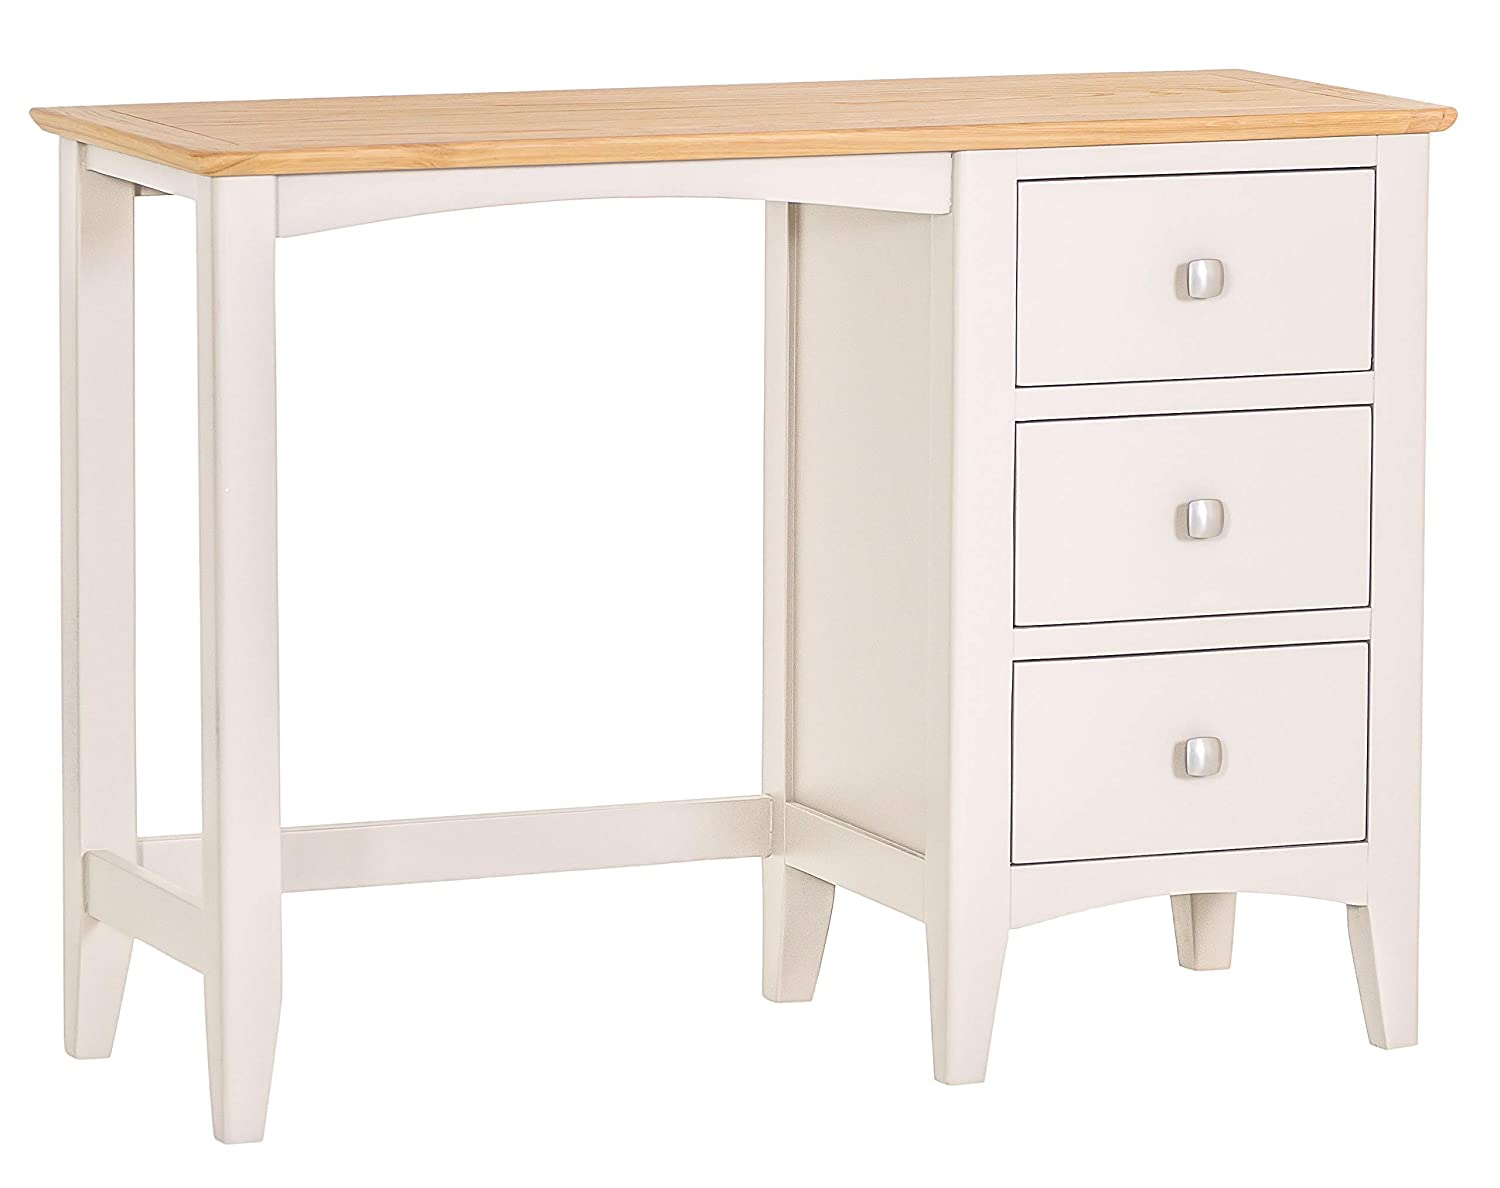 829ac7c7ea52 The Furniture Outlet Malvern Shaker Ivory Painted Oak Dressing Table:  Amazon.co.uk: Kitchen & Home